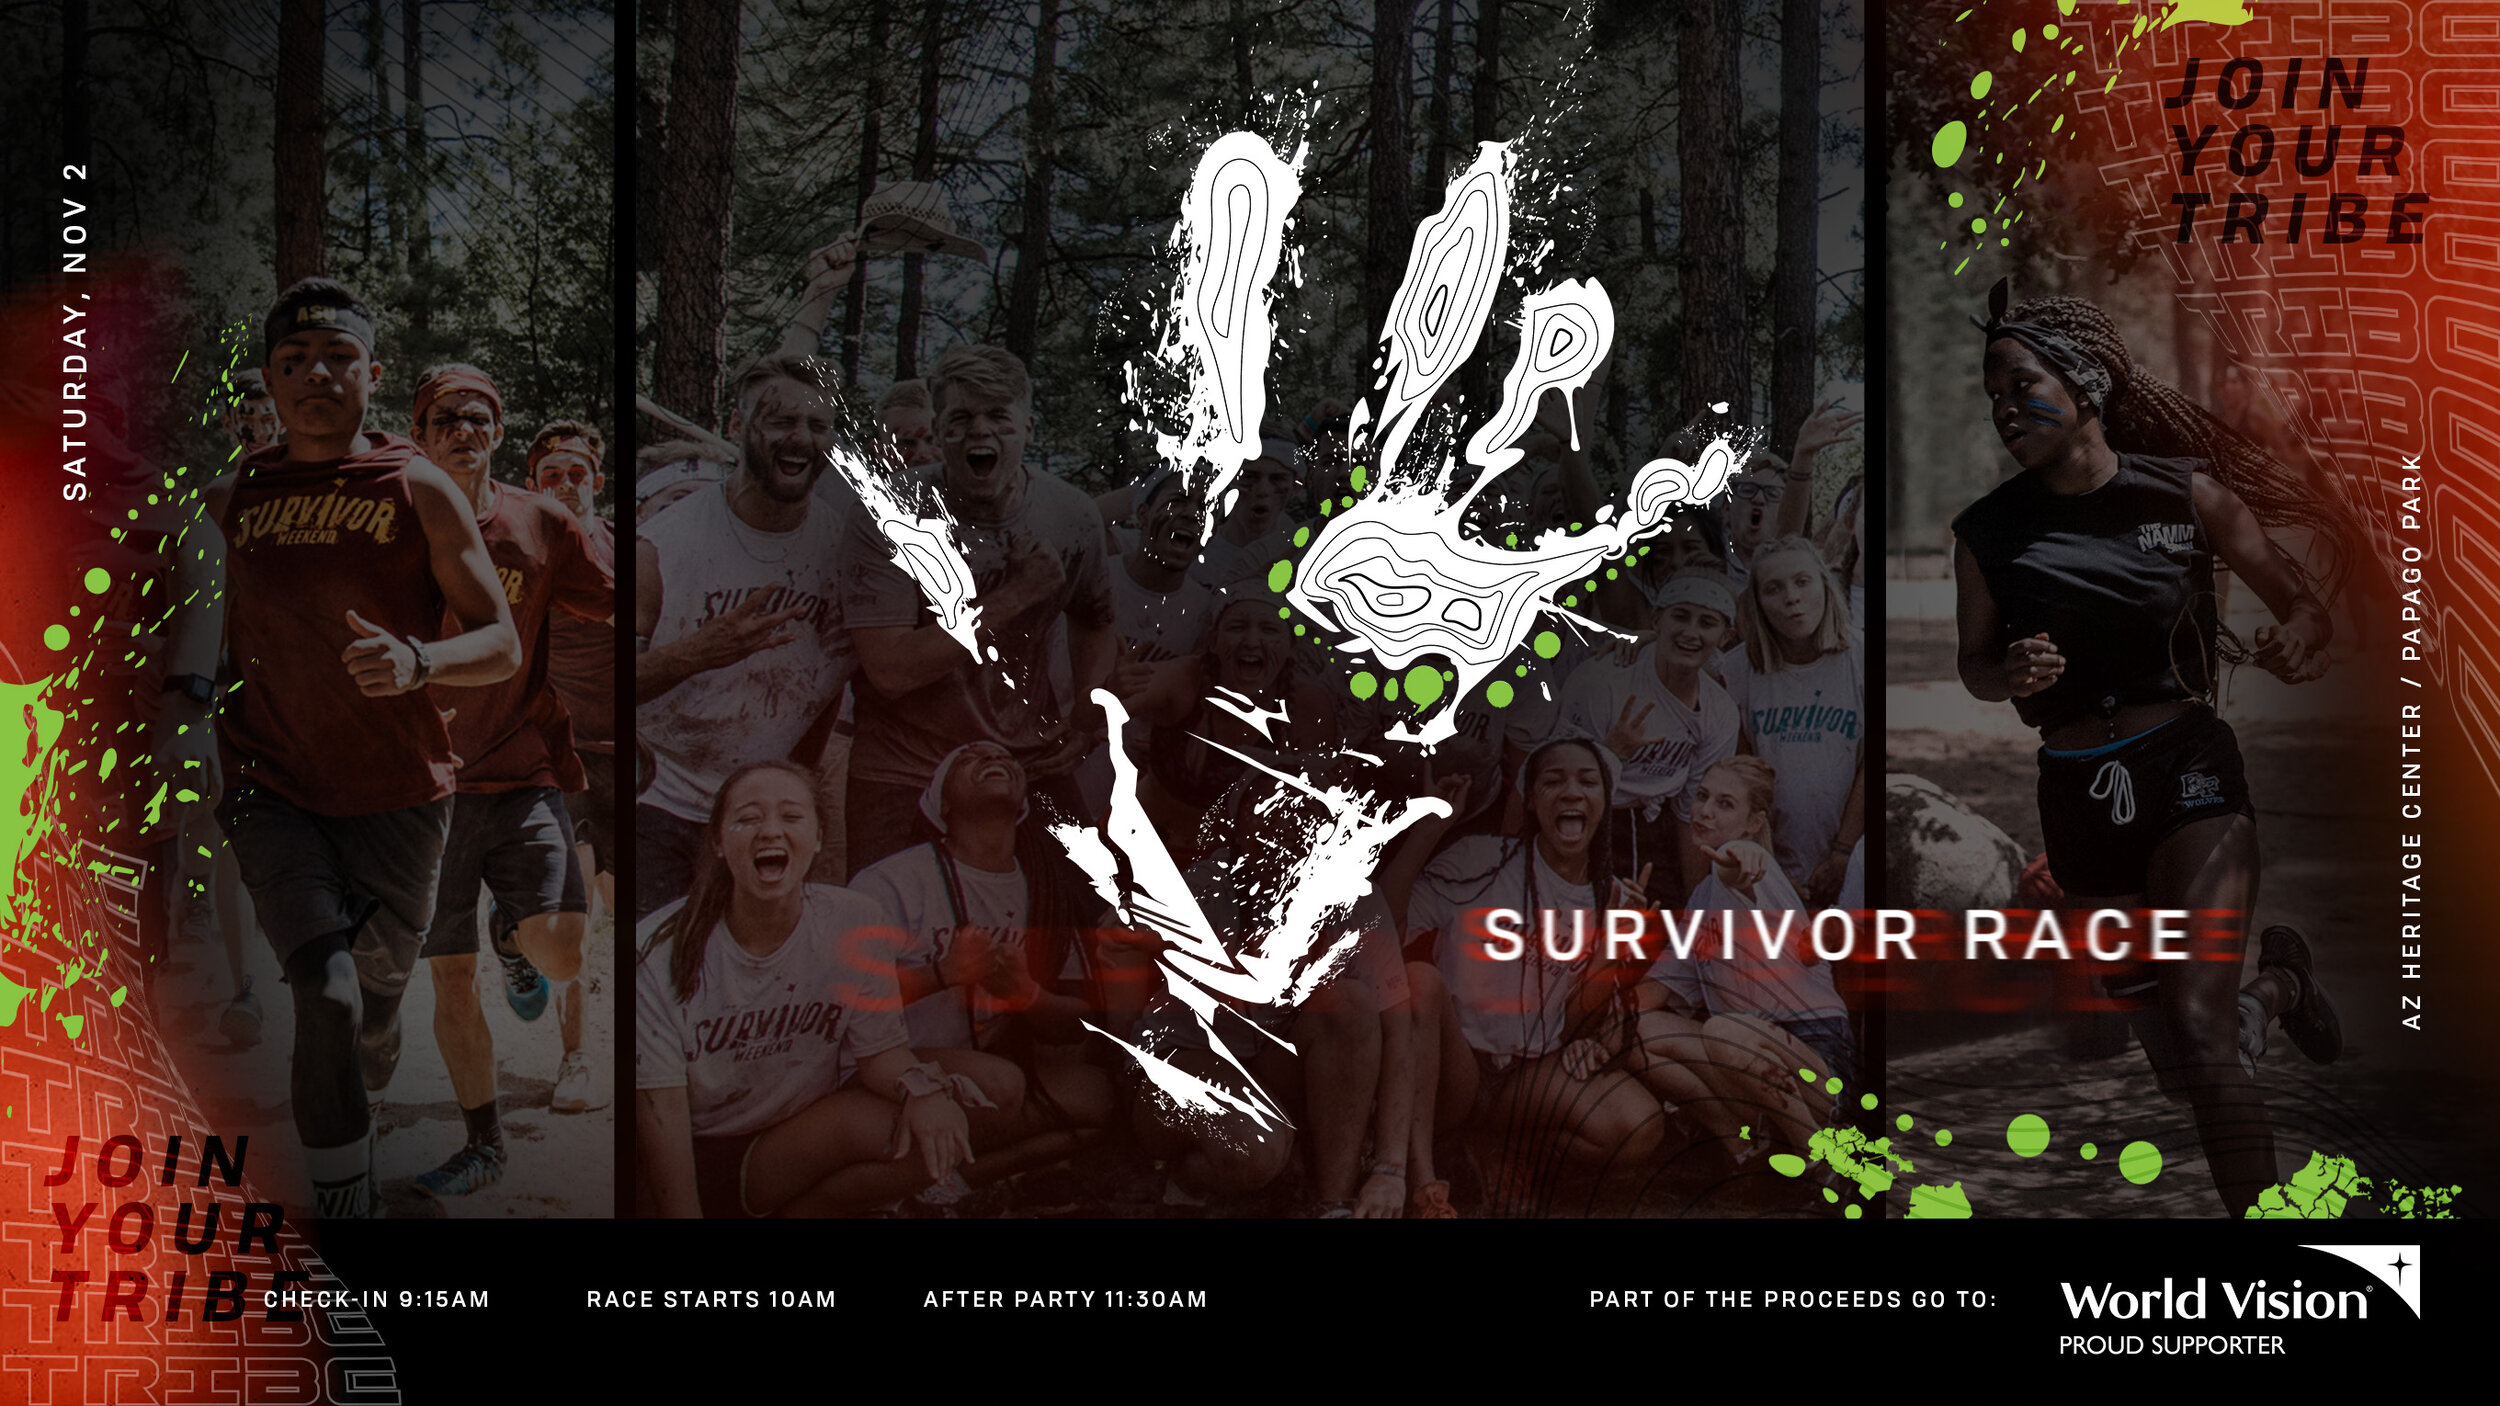 Survivor Design_16x9_MacArtboard 1.jpg